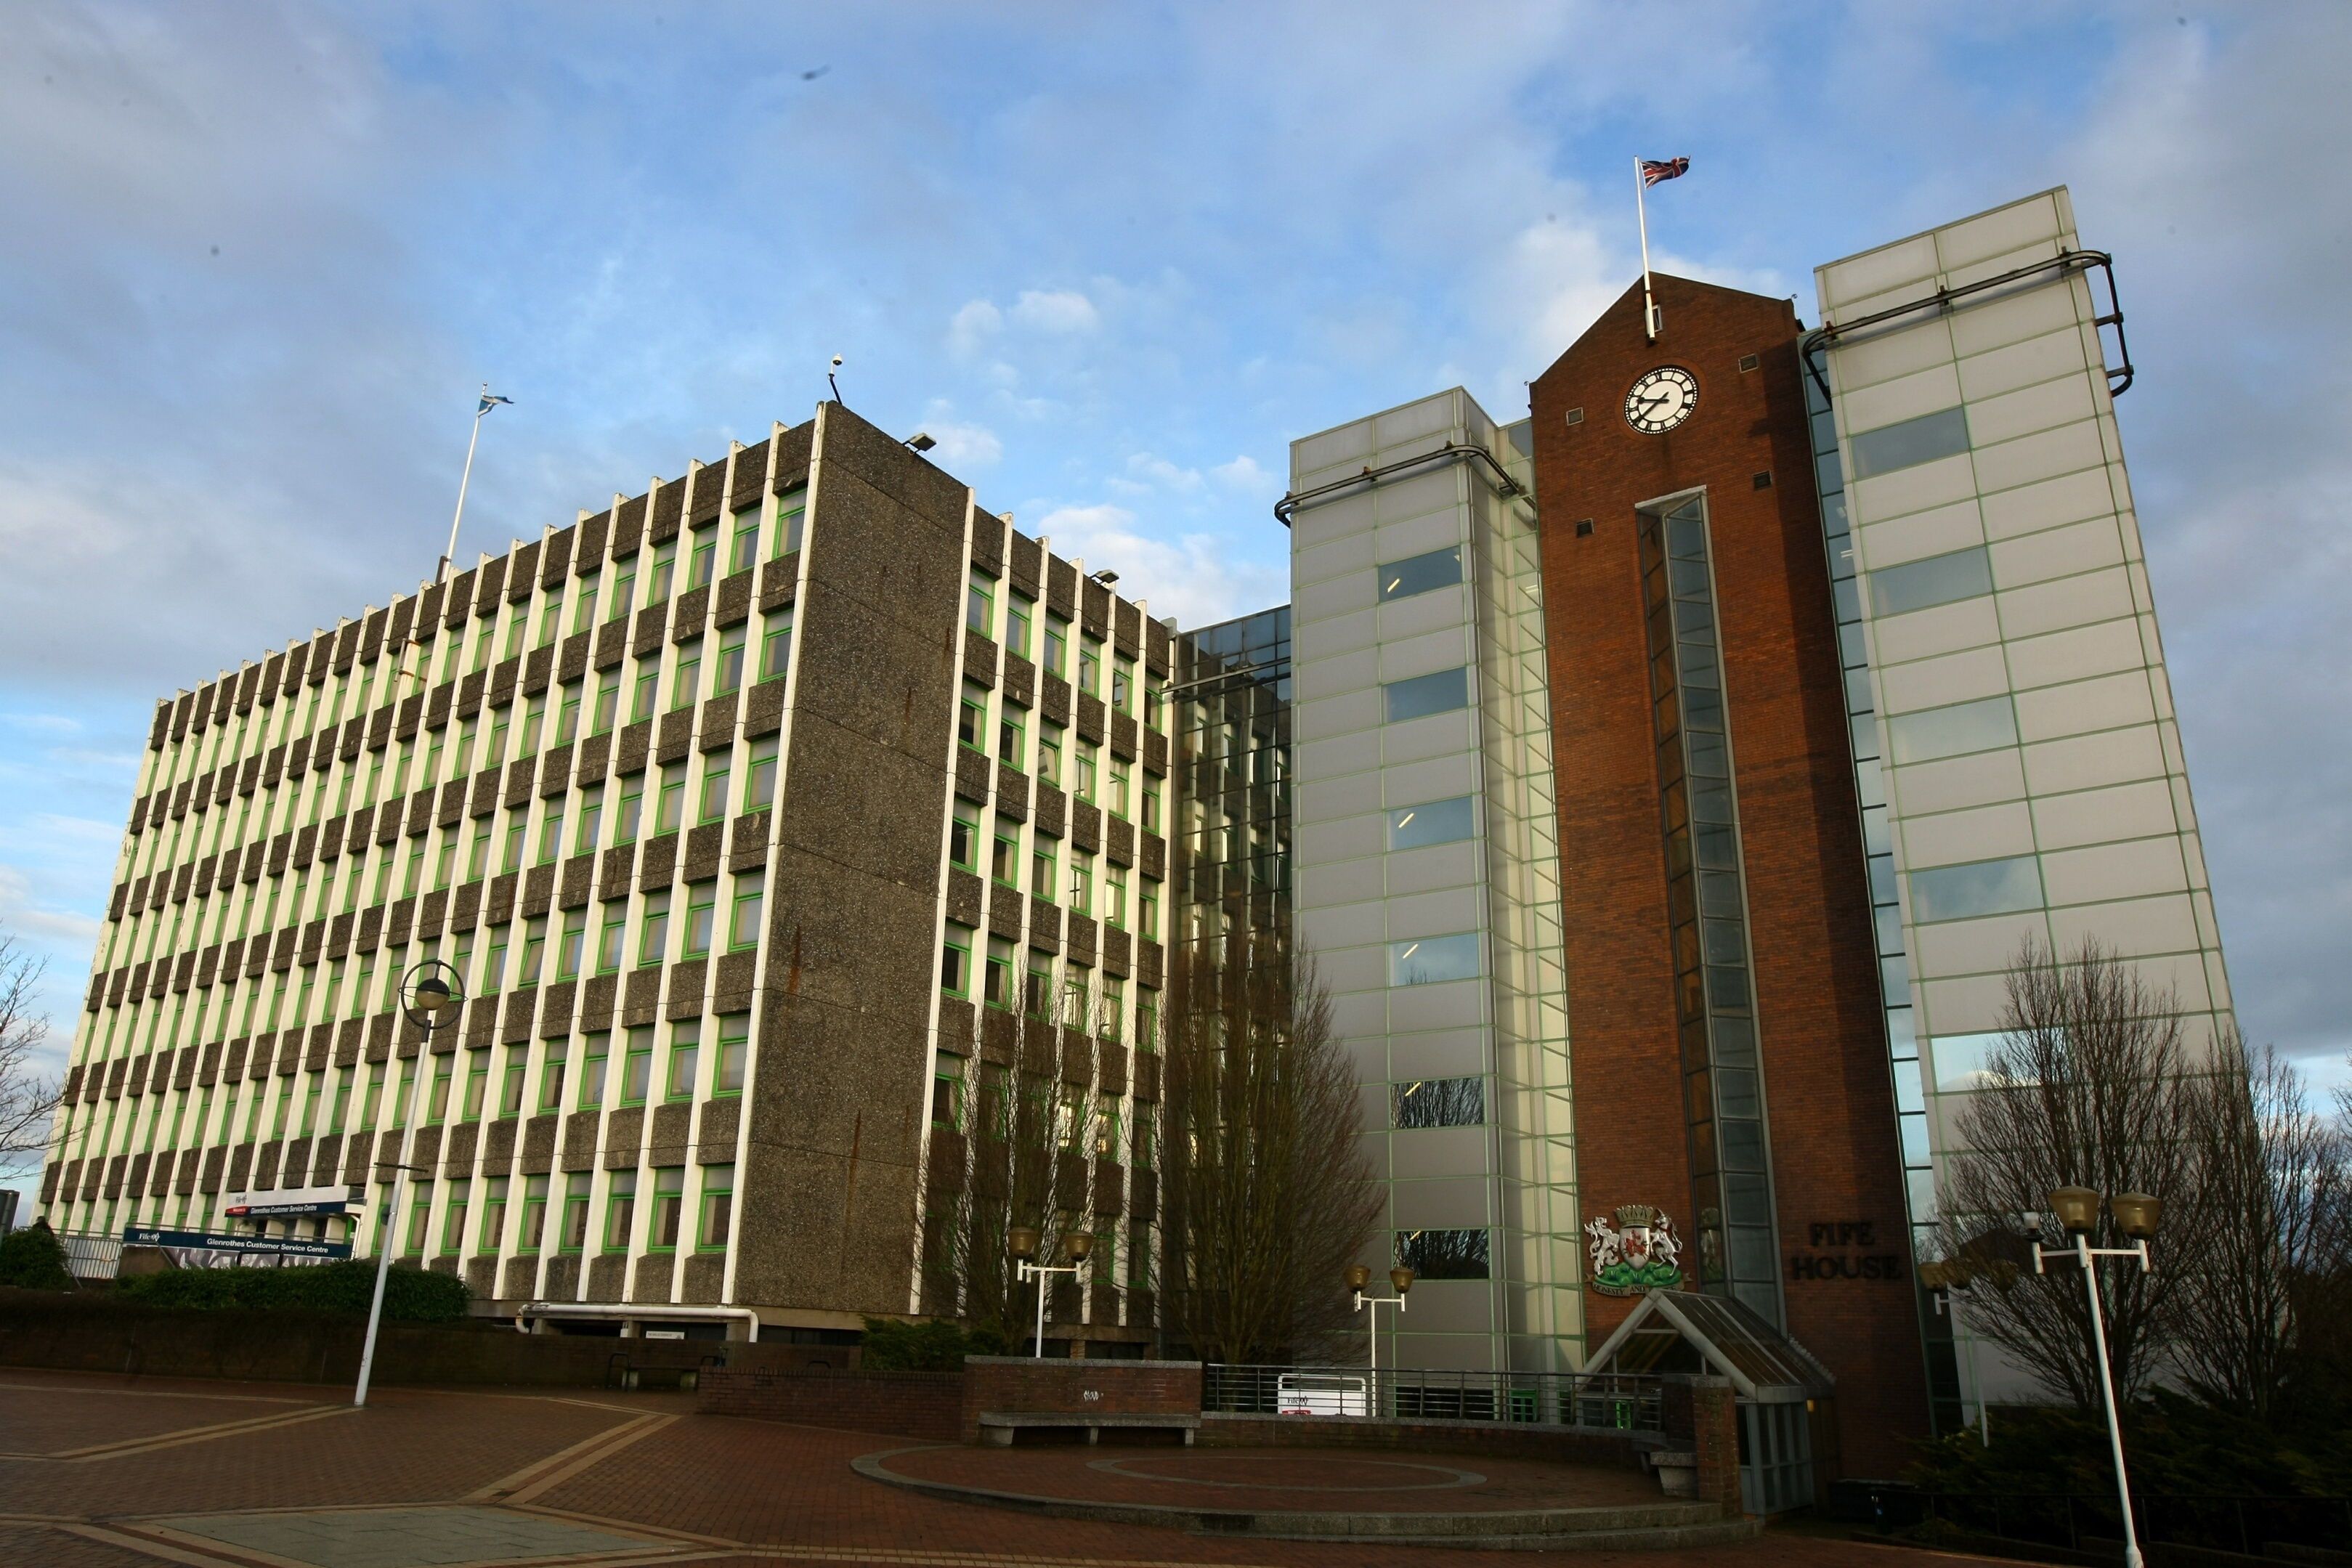 Councillors will meet to discuss the report